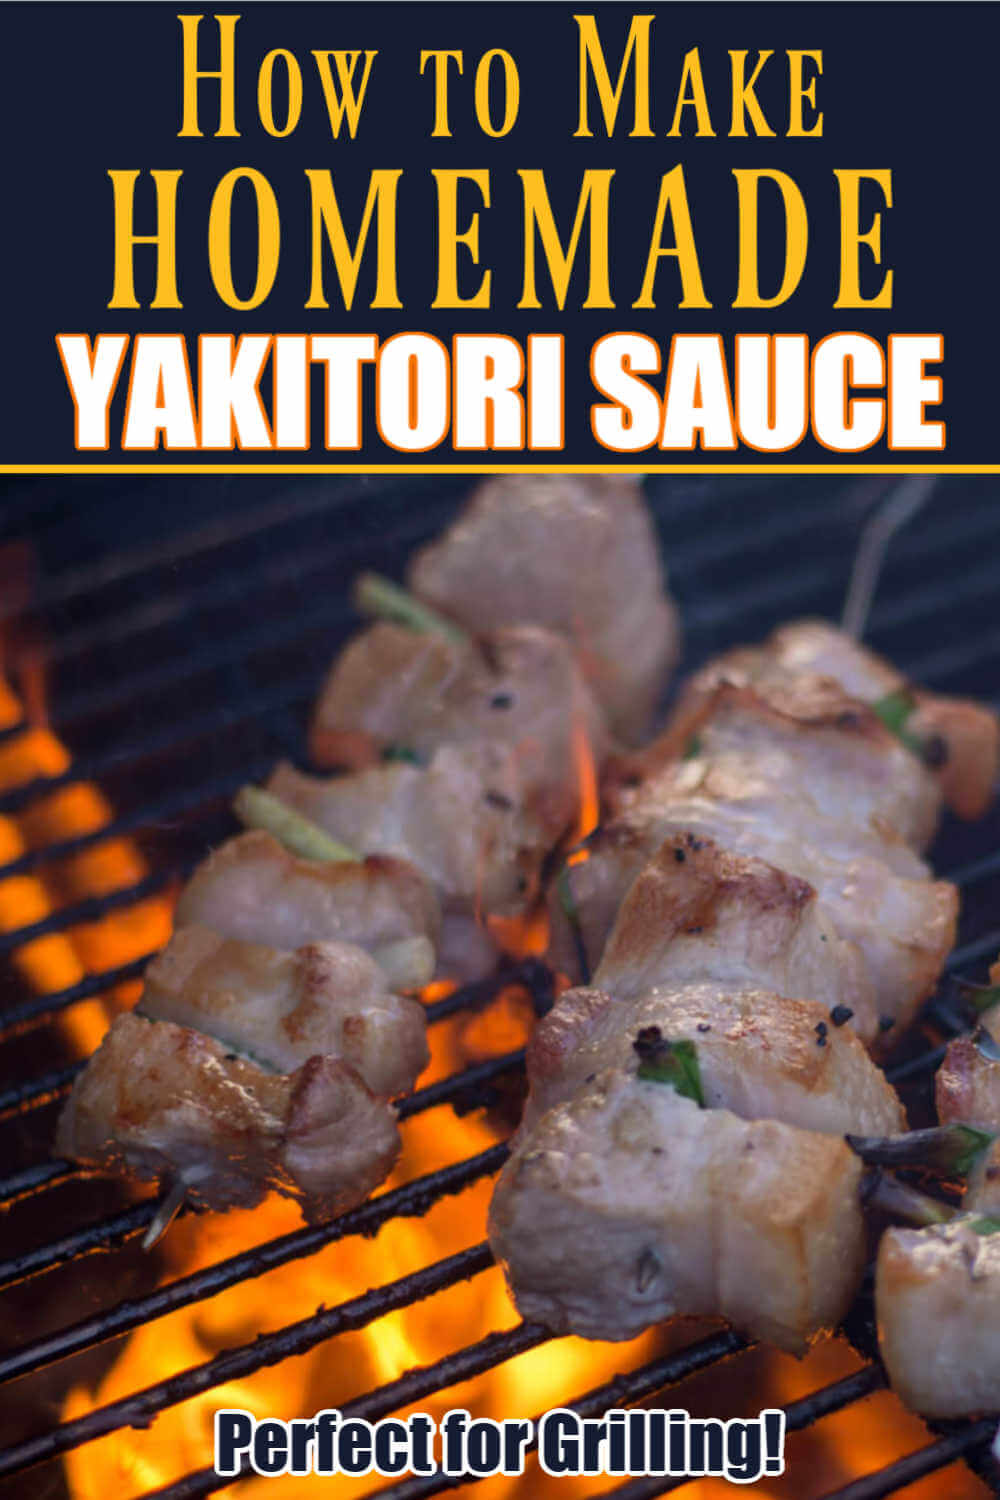 Homemade Yakitori Sauce Recipe